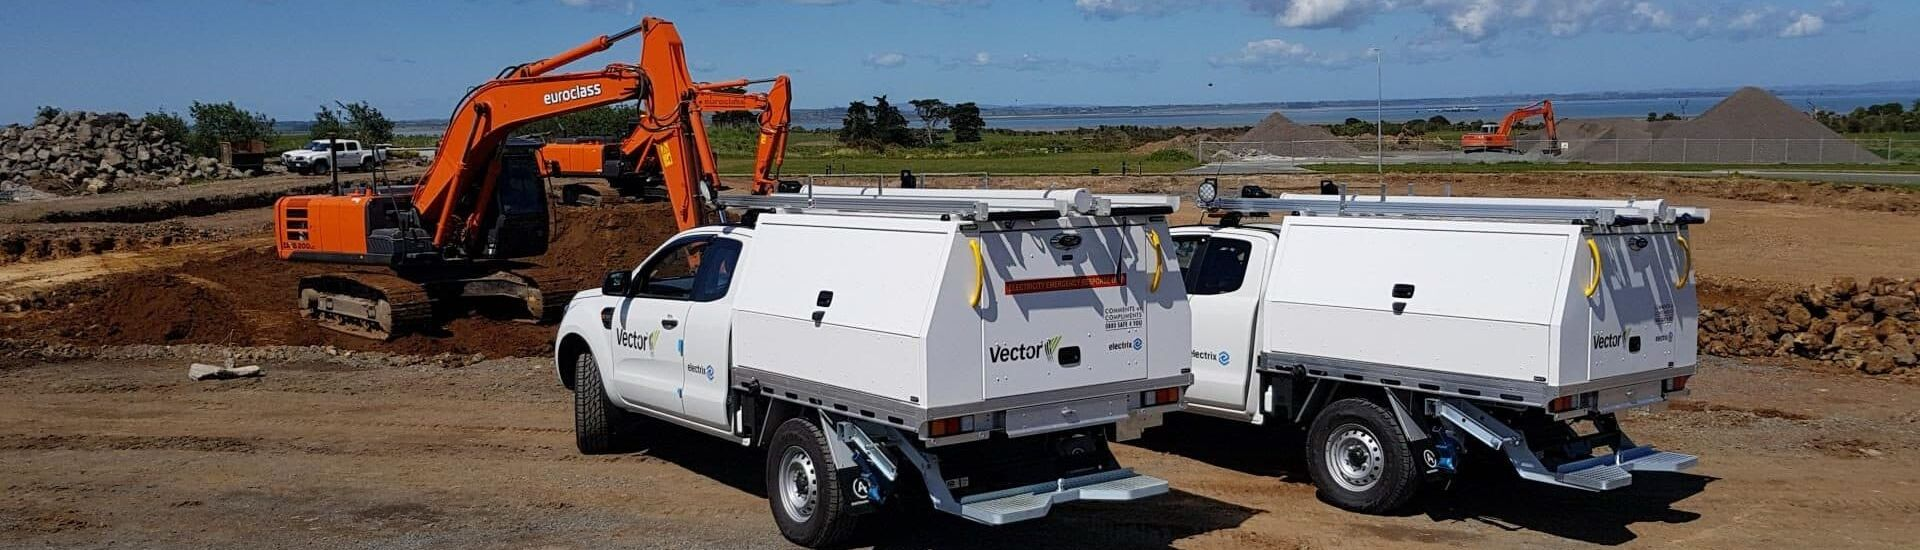 Professional service bodies for commercial ute fleet